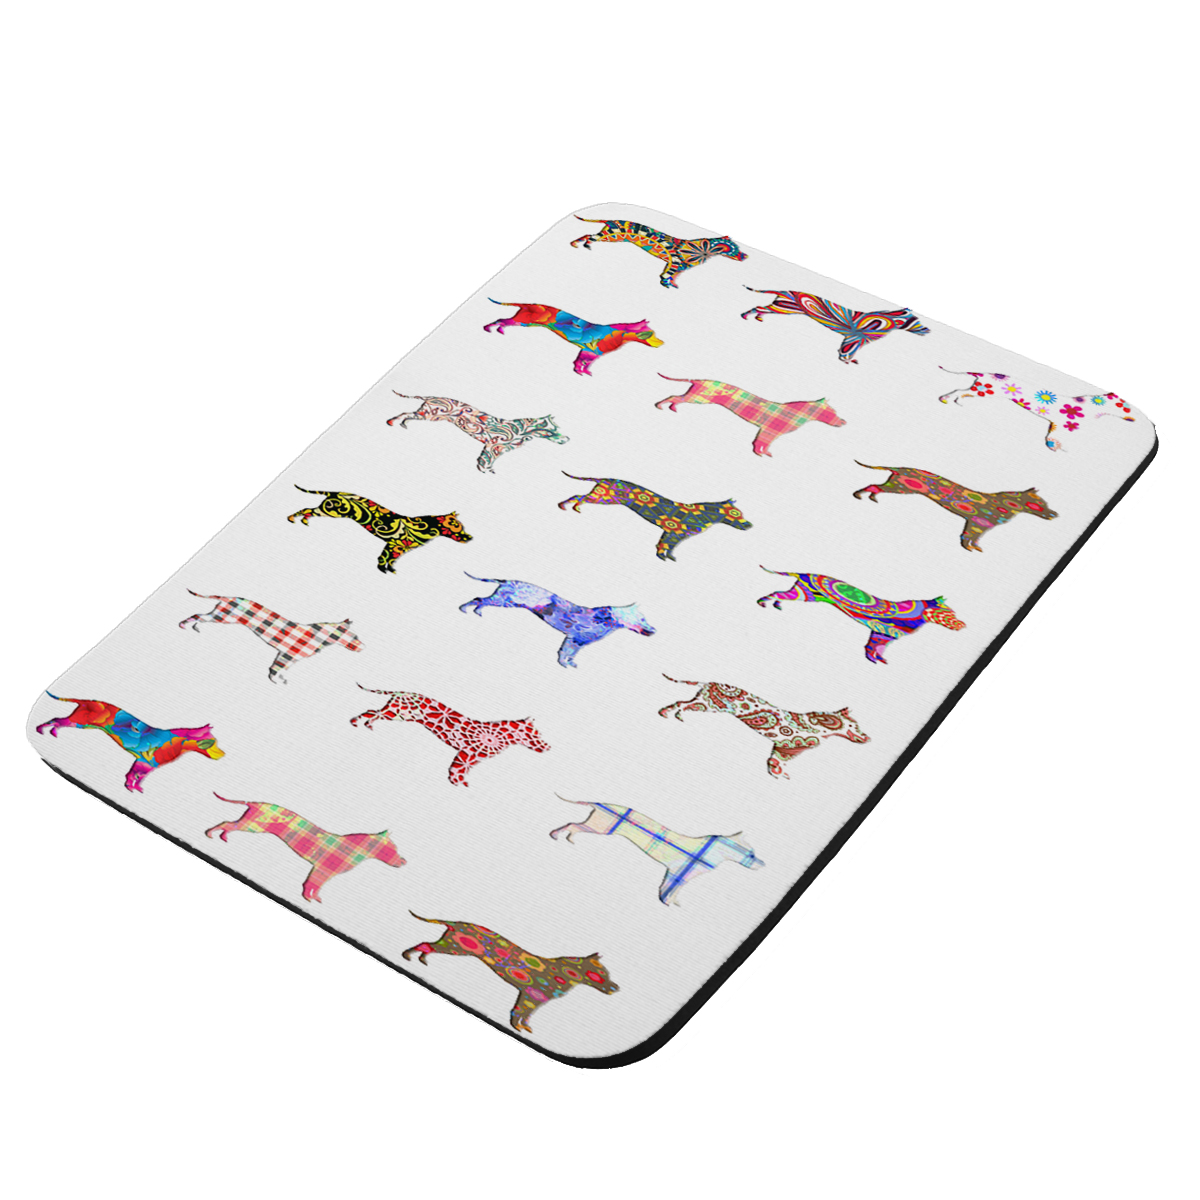 American Staffordshire Terrier Dog - KuzmarK Mousepad / Hot Pad / Trivet